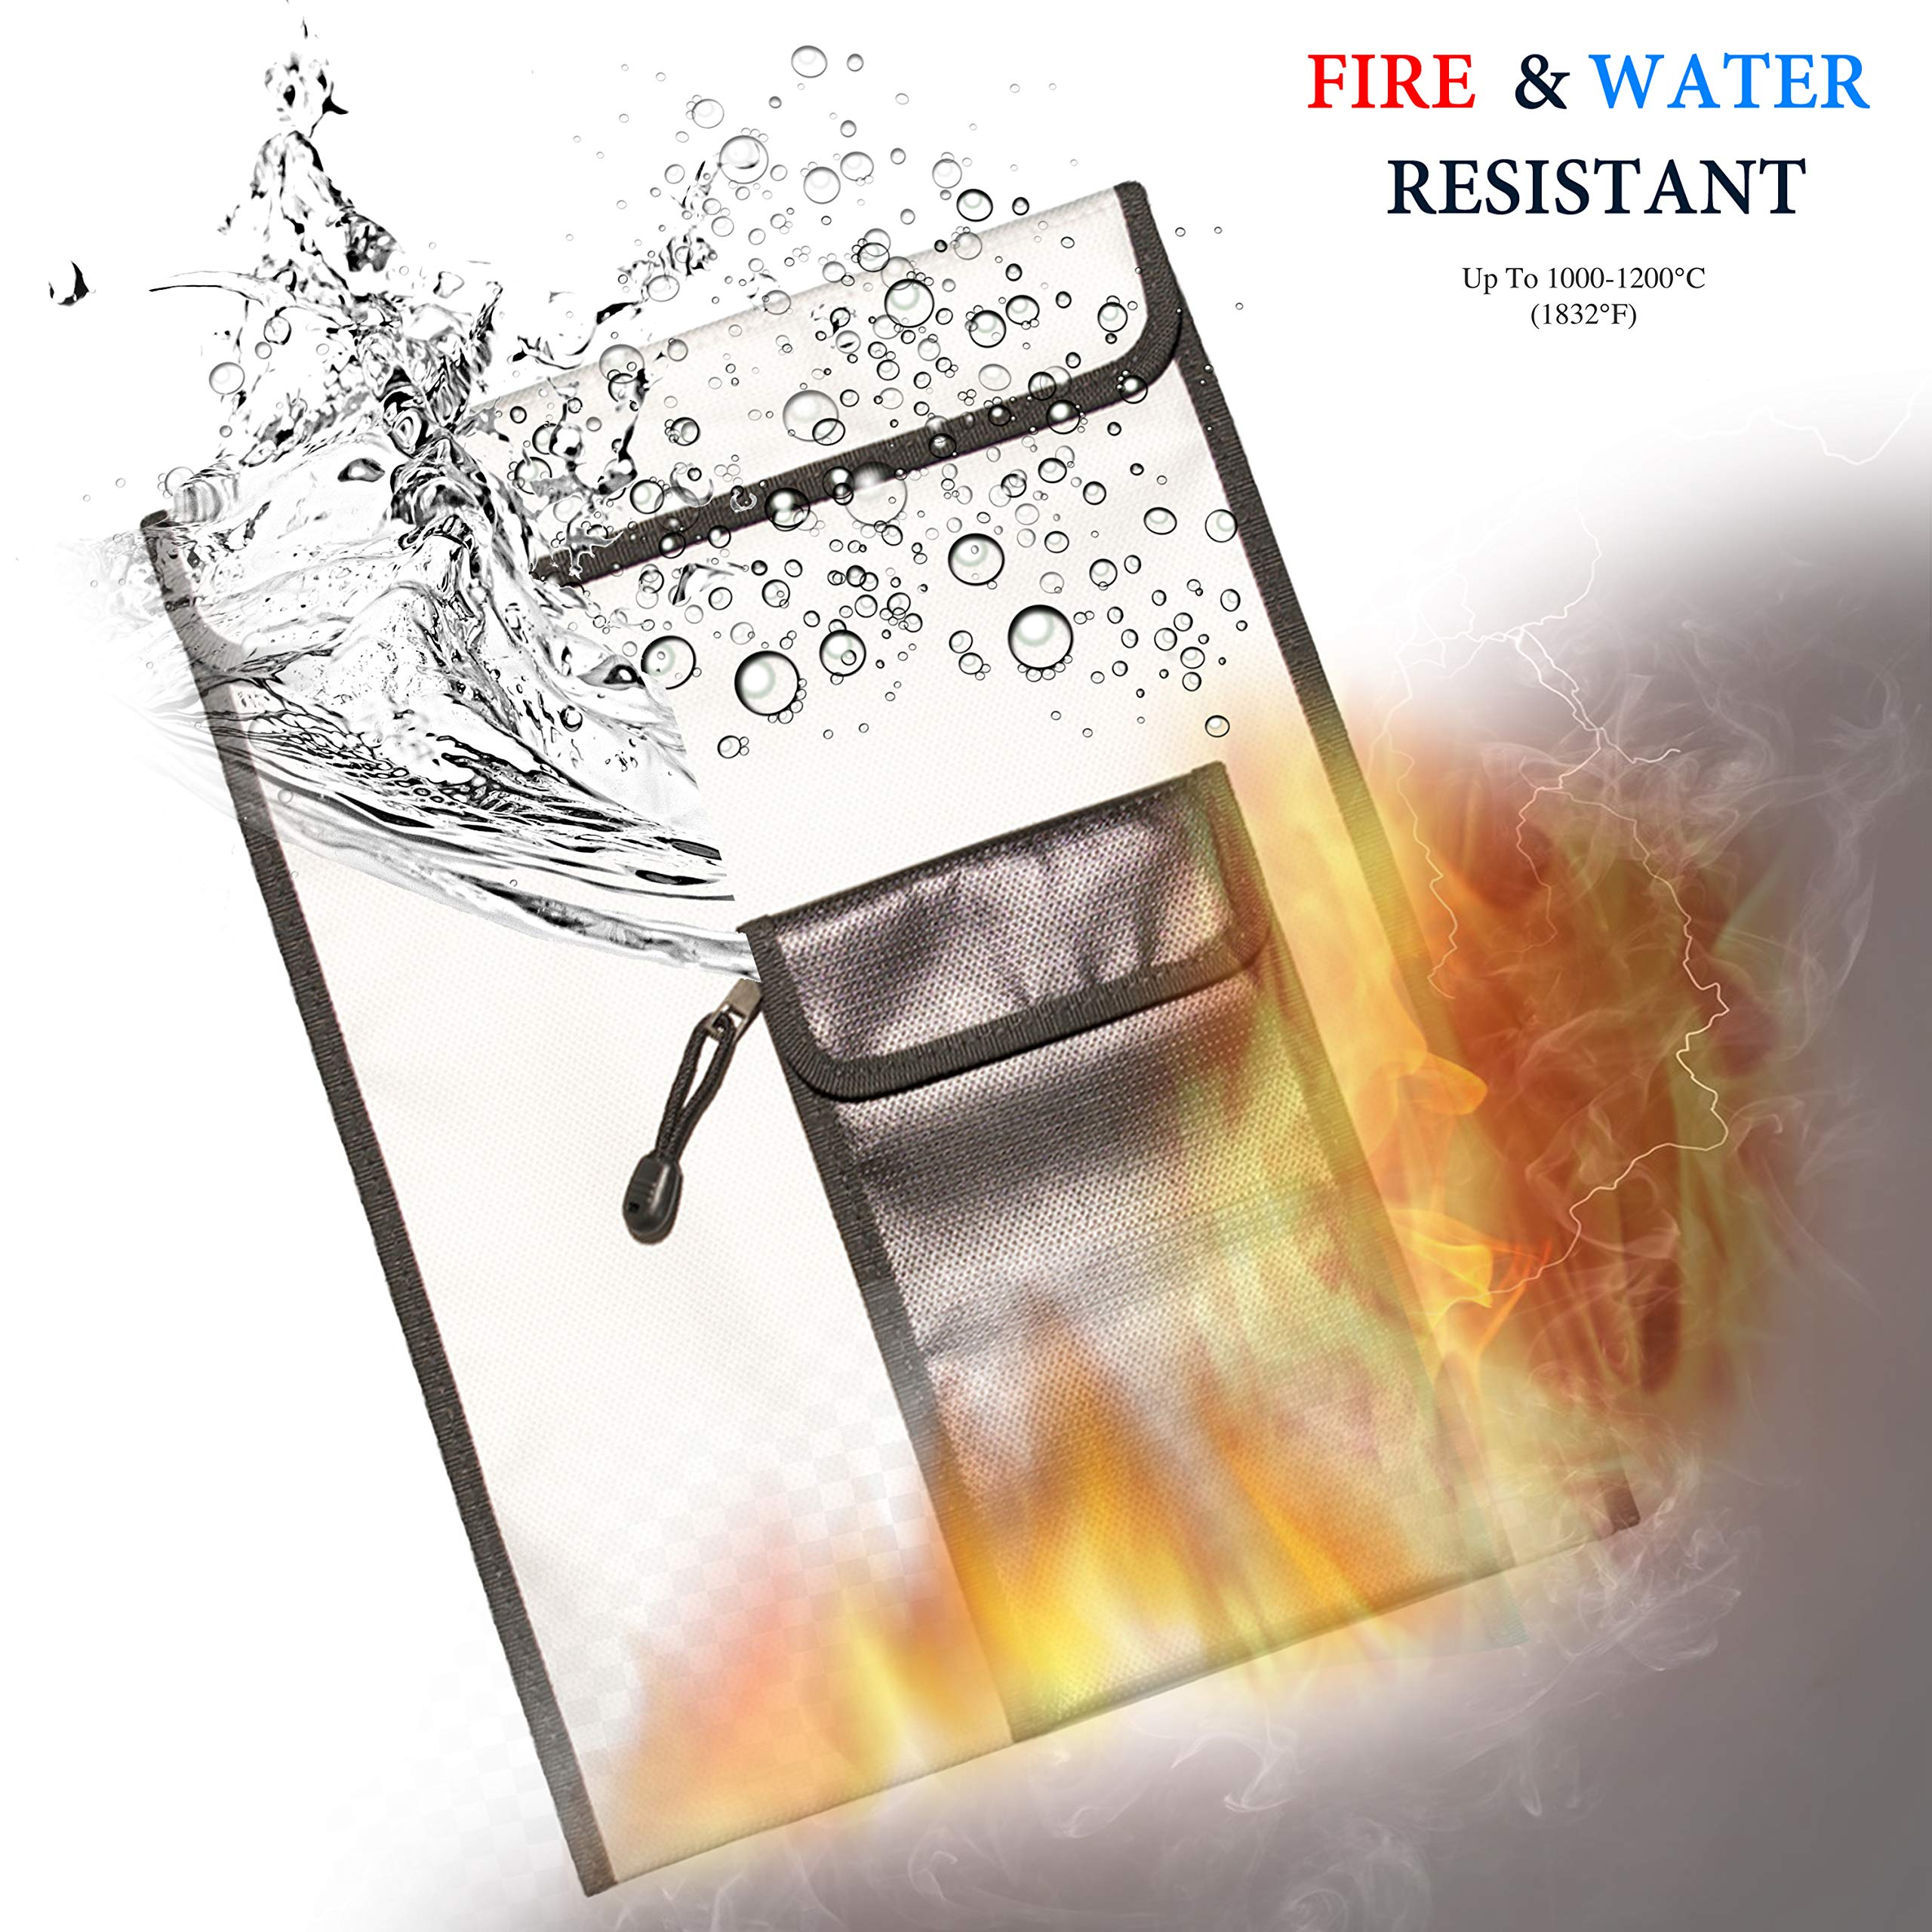 Fireproof Document Bag 15'' x 11'' [Bonus 5'' x 8''] Non-Itchy Silicone Coated Fire Resistant, Waterproof Protector Pouch for Valuables, Money, Jewelry, Certificates - Gray and Black with Zipper Closure